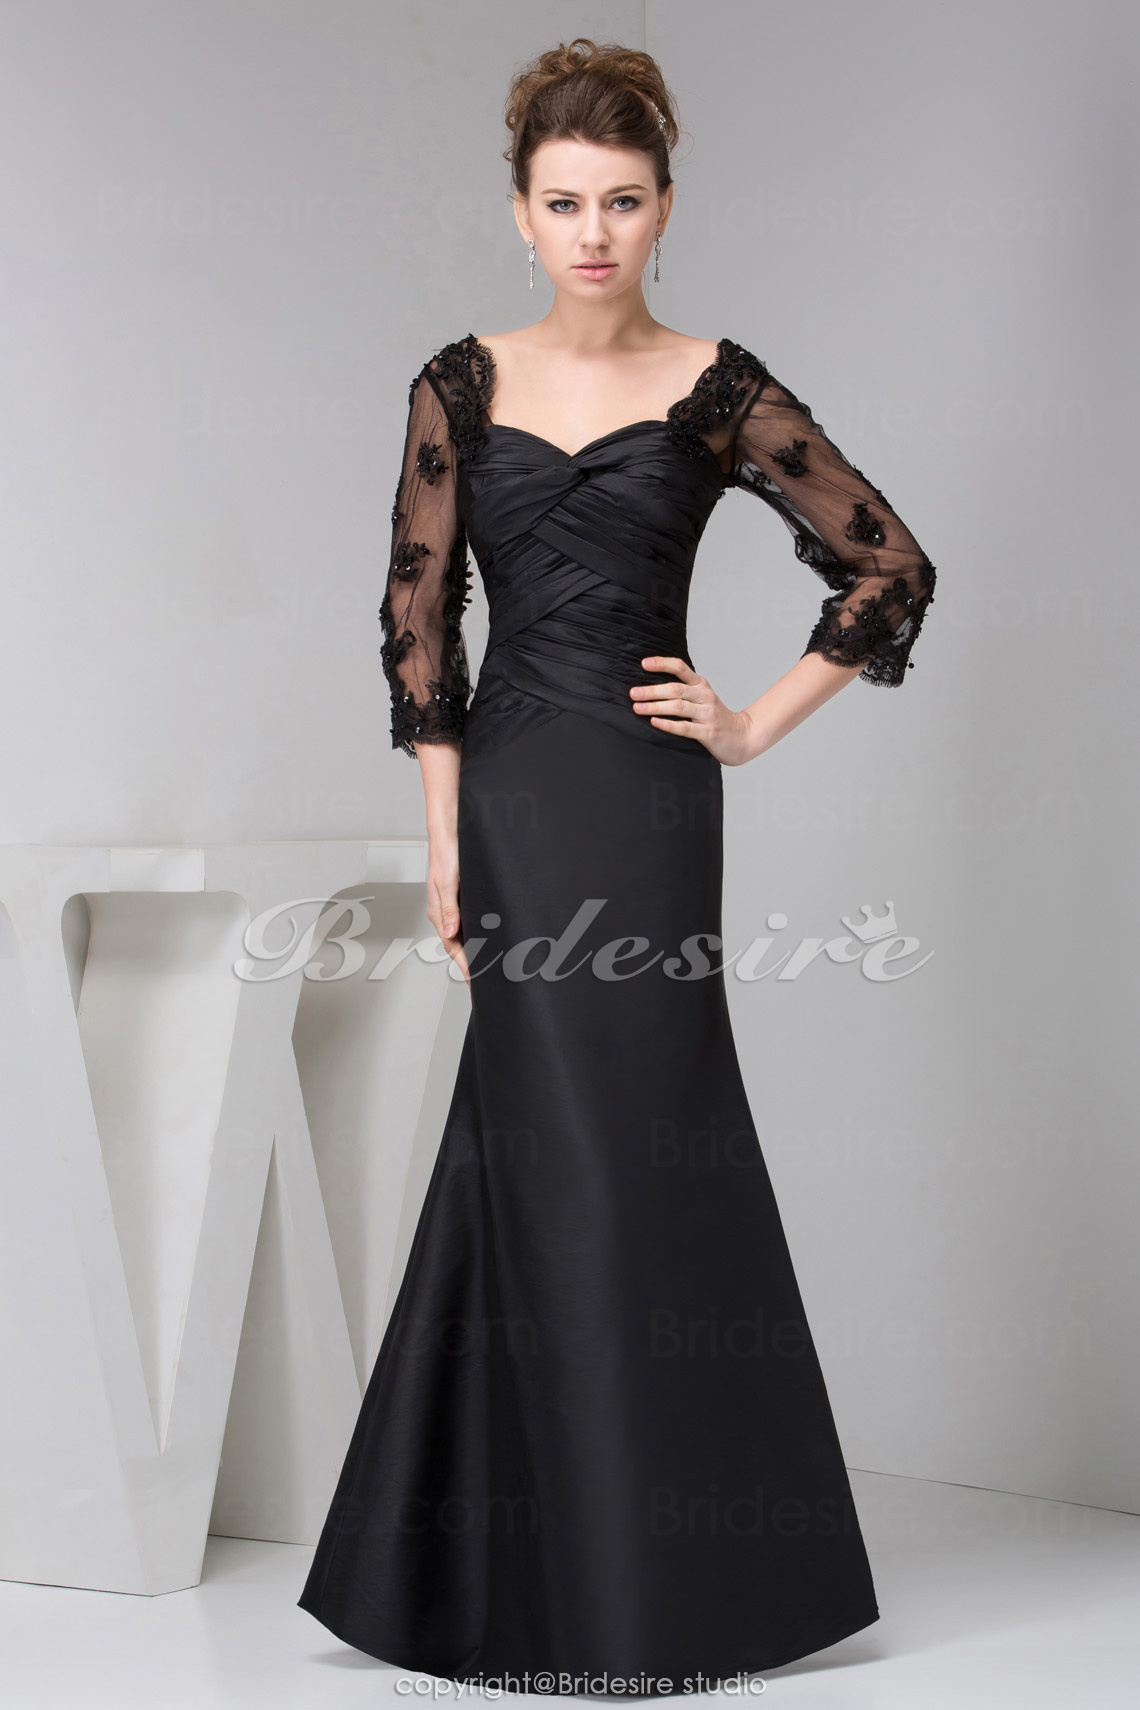 A-line Sweetheart Floor-length 3/4 Length Sleeve Taffeta Lace Dress